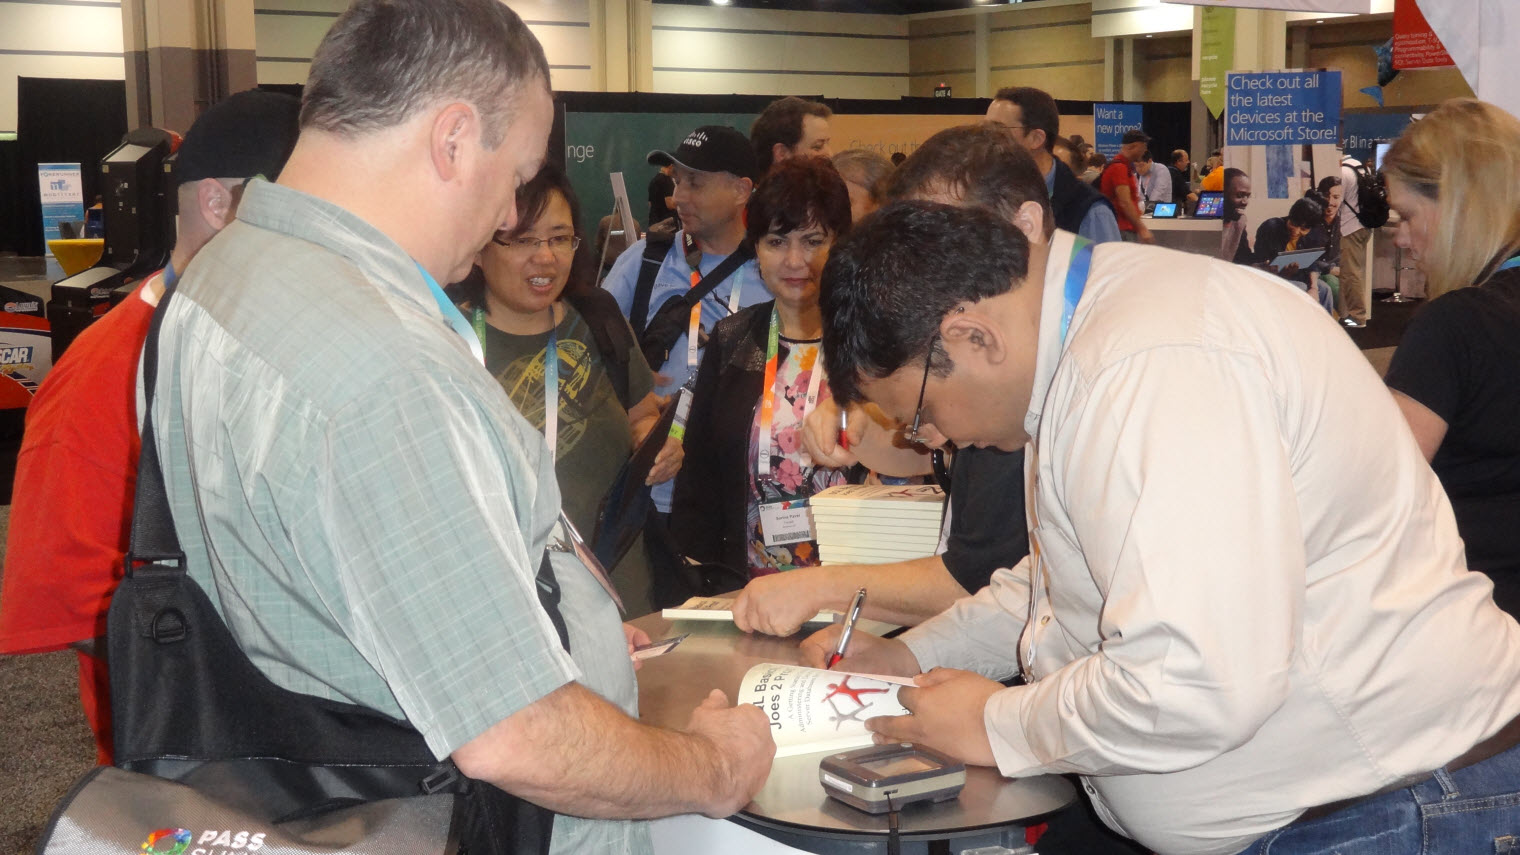 SQL SERVER - SQLPASS 2013, Charlotte Memories - Book and Book Signing - Part 2 sqlpass2013-book3